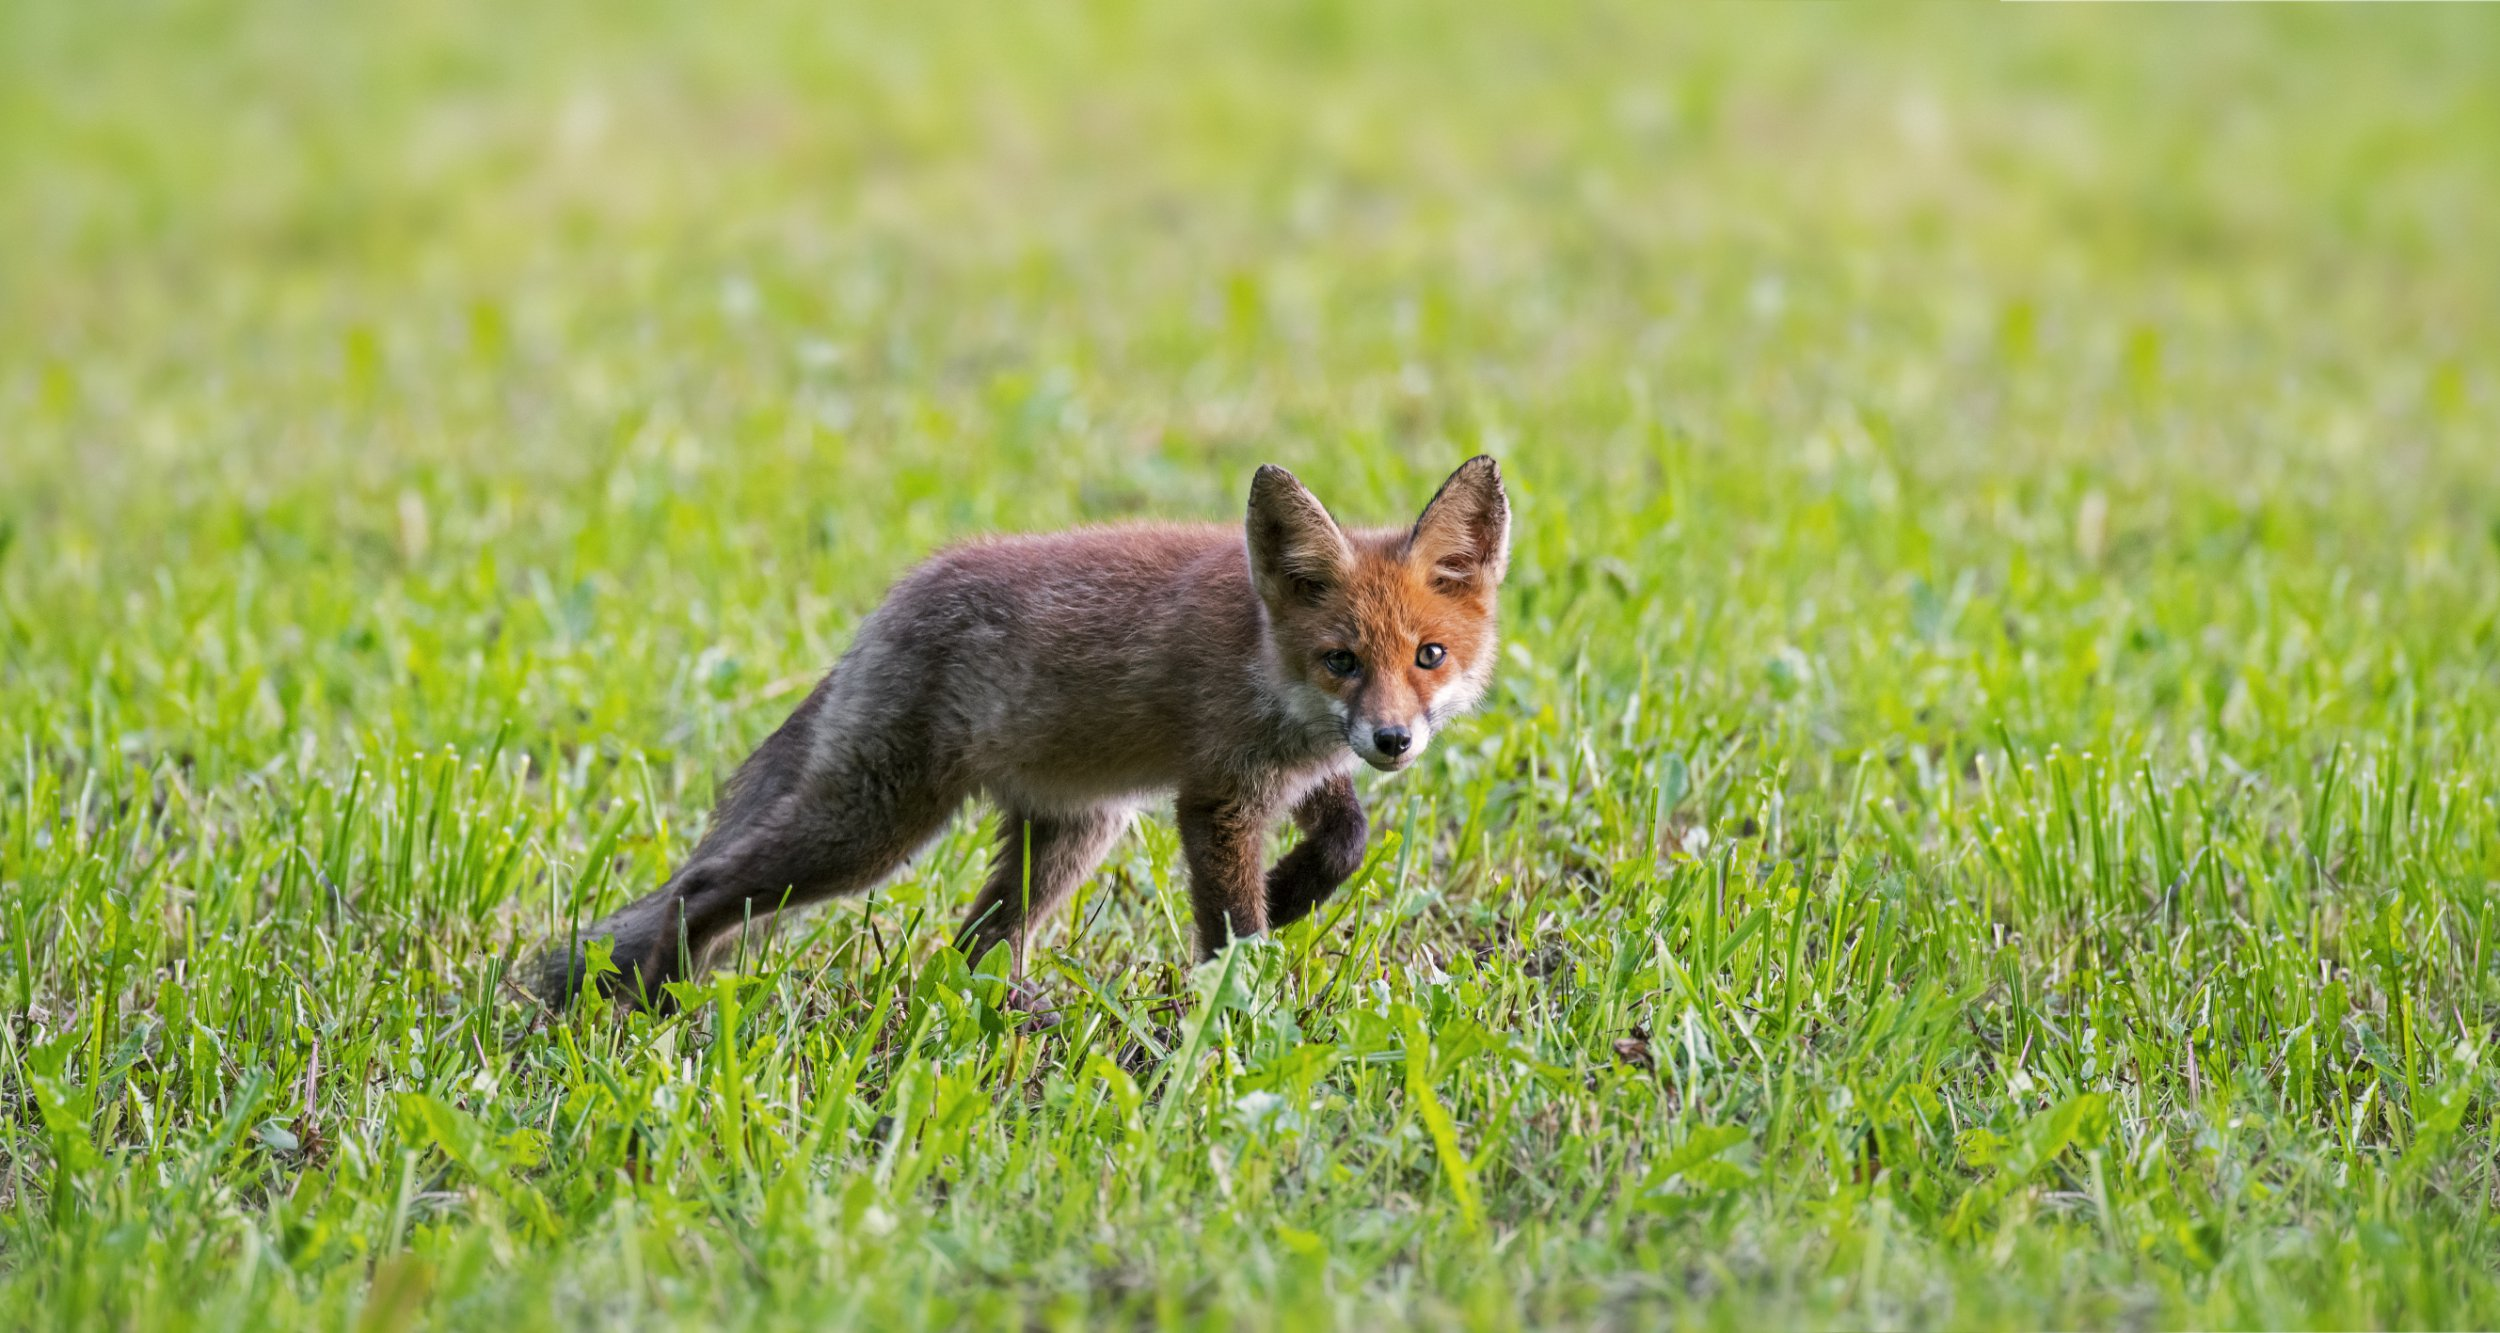 There is not going to be a vote on the hunting ban after all